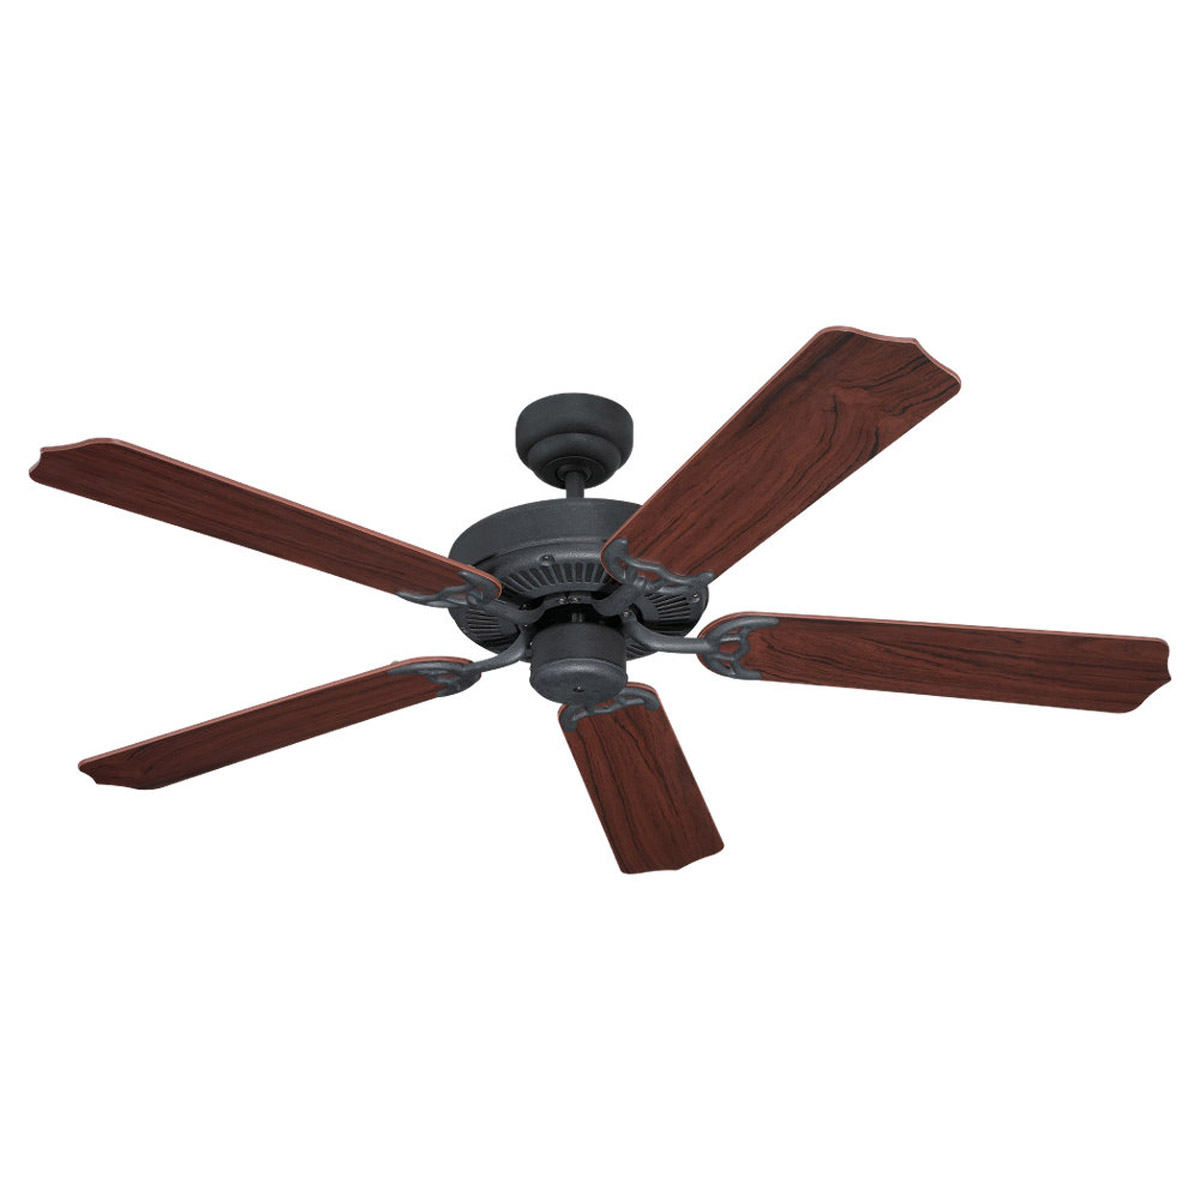 Sea Gull Lighting 52in Quality Max Ceiling Fan in Weathered Iron 15030-07